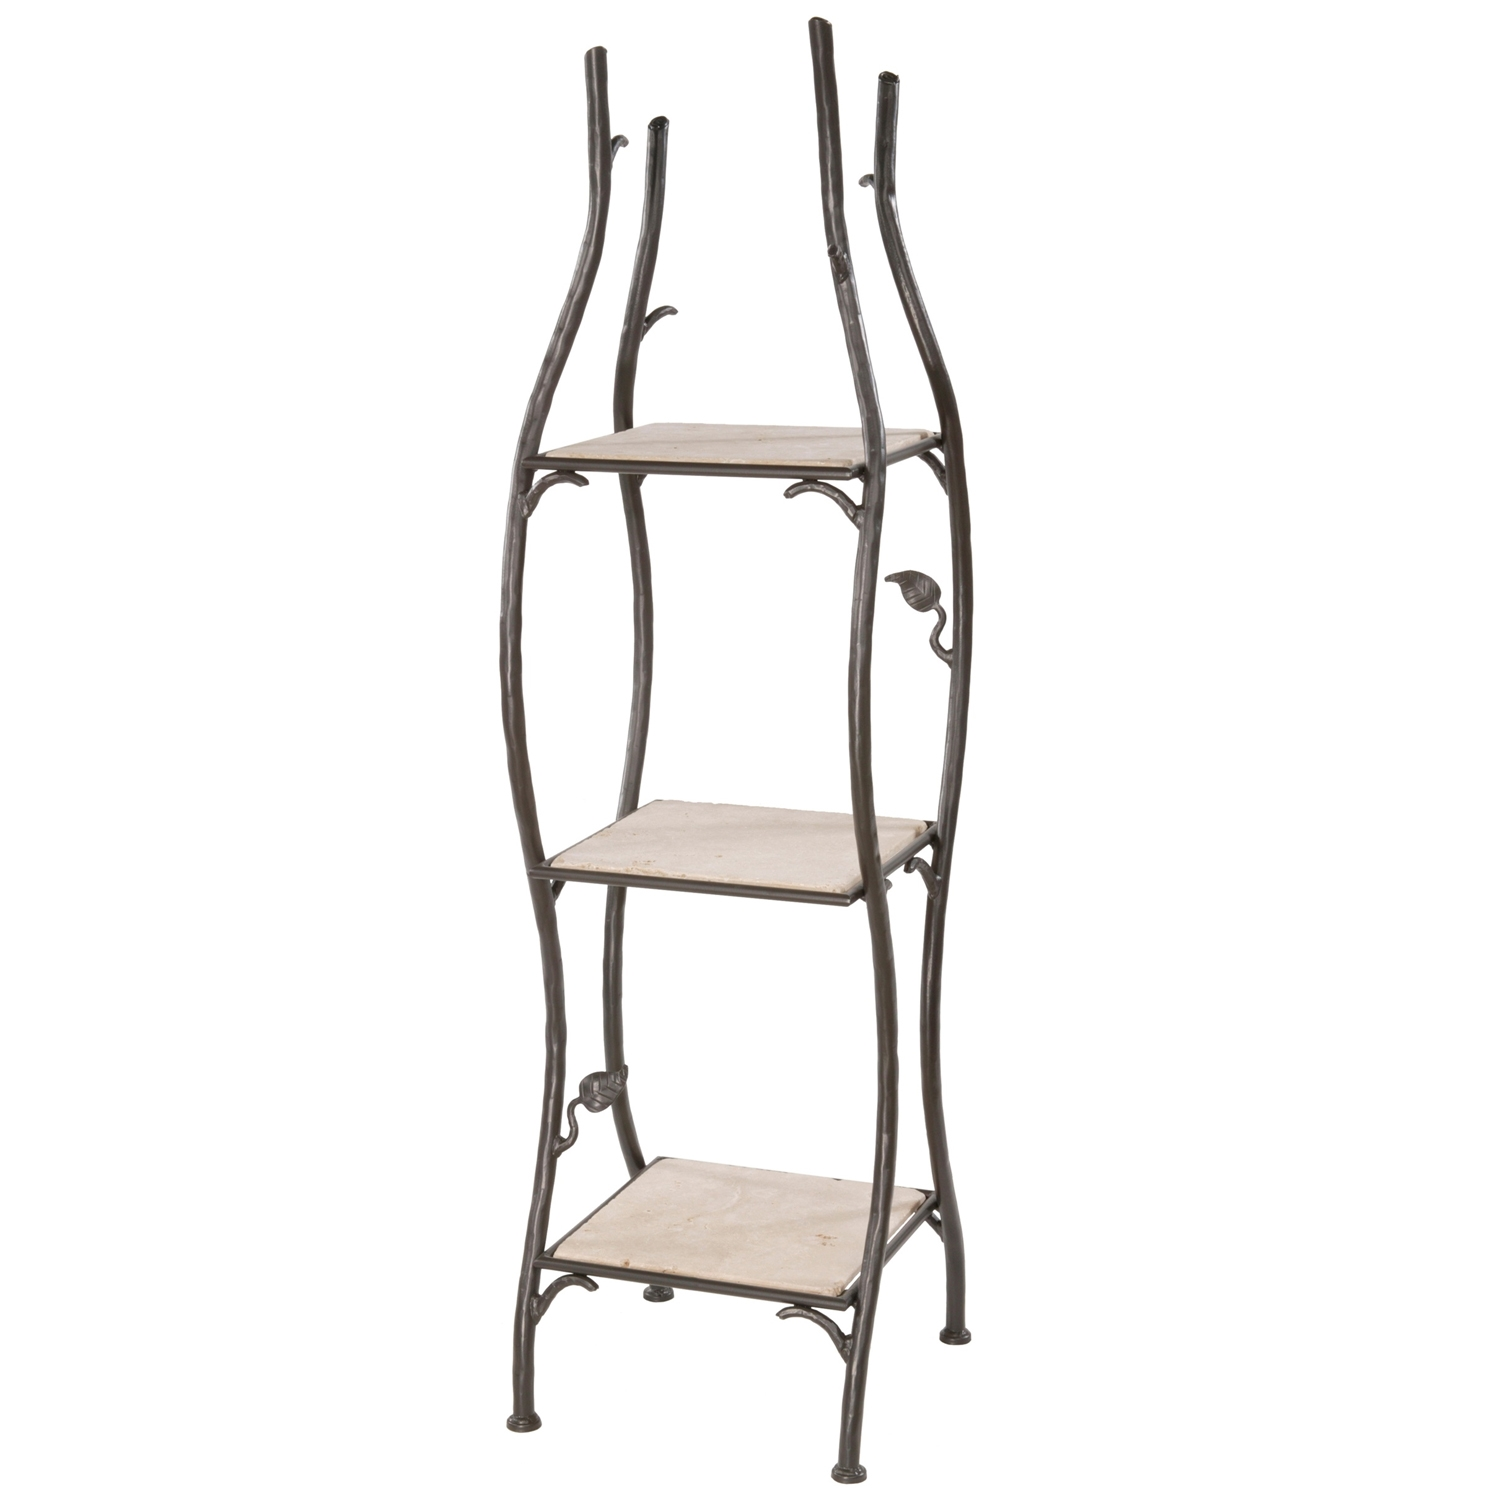 Wrought iron shelves bathroom - Pictured Here Is The Single Width Sassafras Standing Shelf With Rustic Wrought Iron Frame And